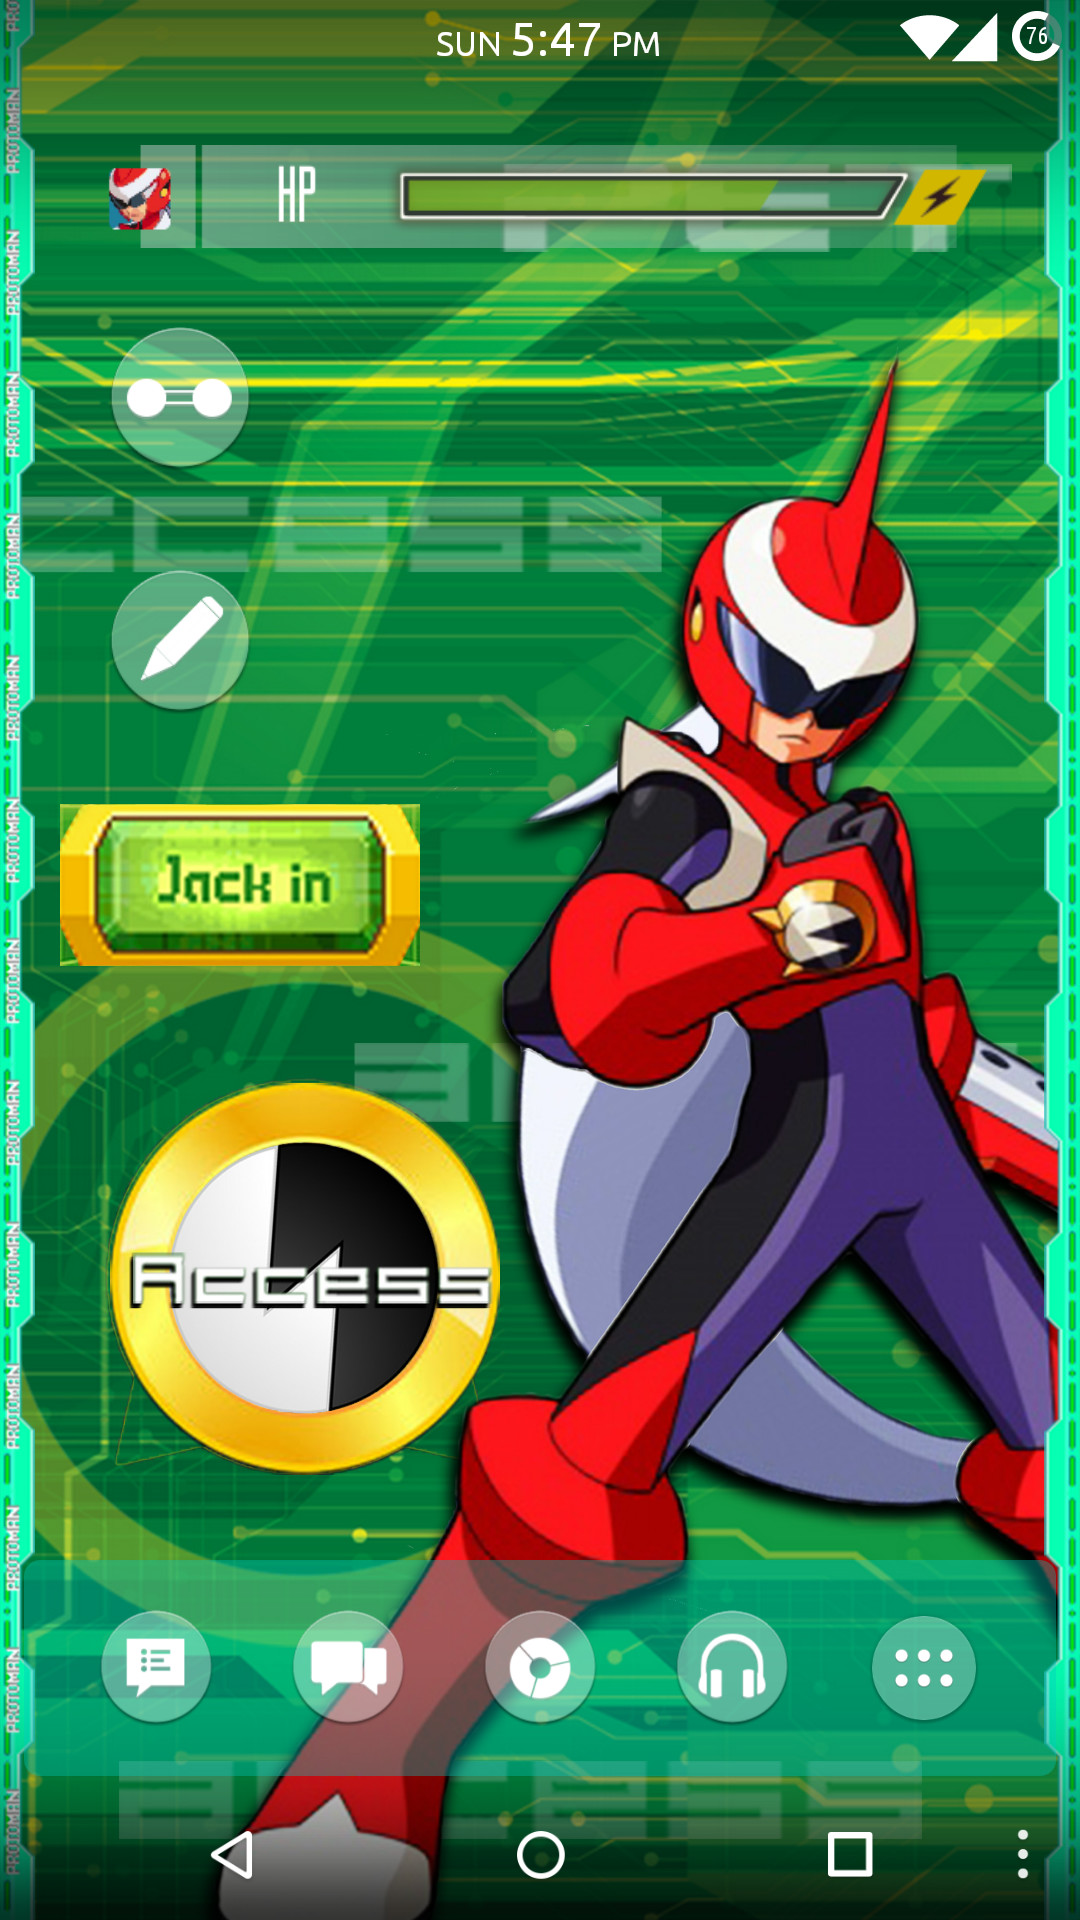 Mega Man Iphone Wallpaper Mega Man Iphone Wallpaper 57 Images